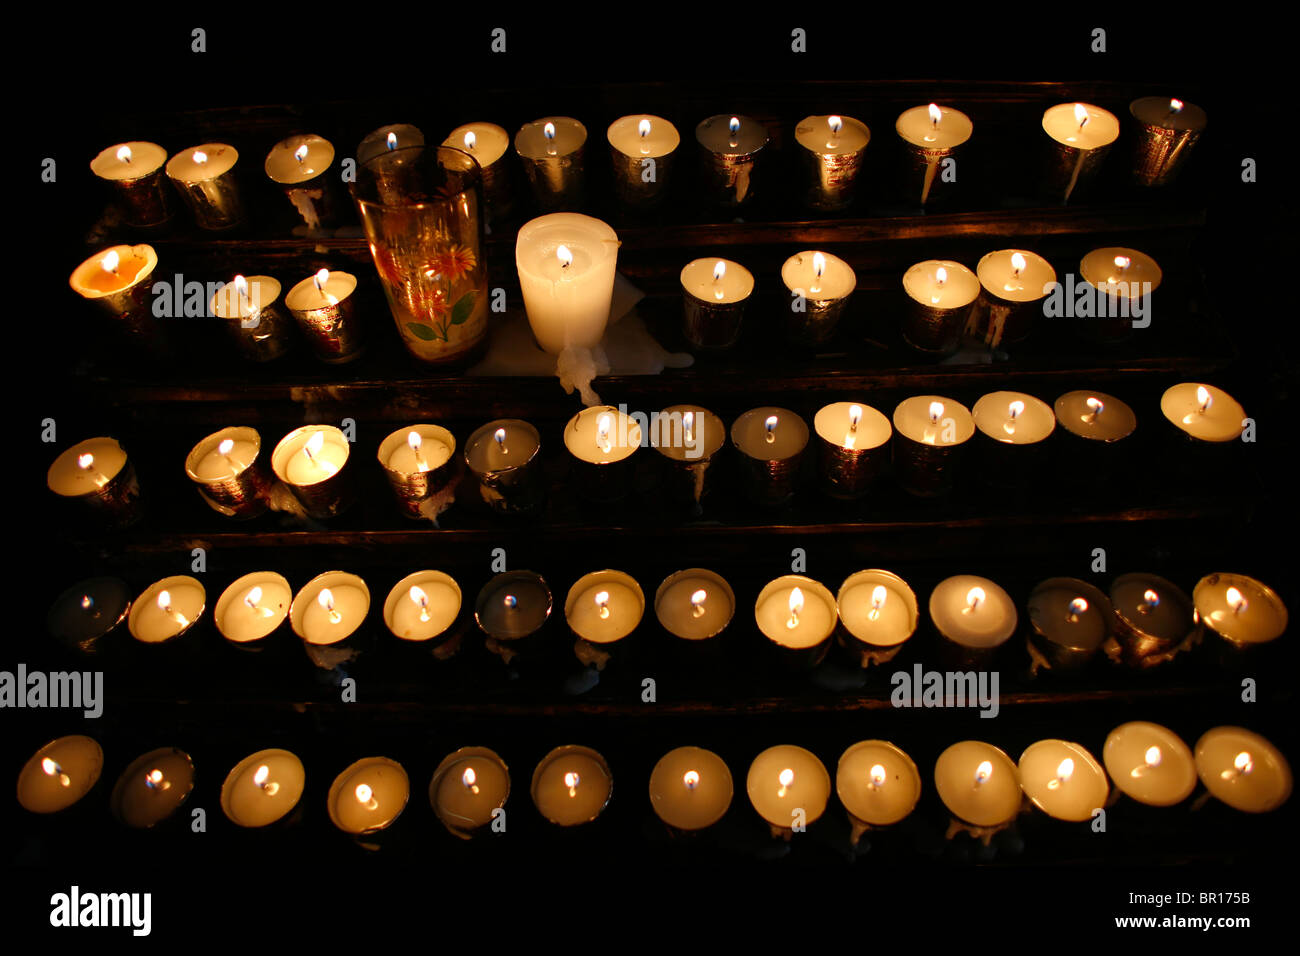 Candles in a church, August 17, 2007, in Puebla de Zaragoza, Mexico. - Stock Image